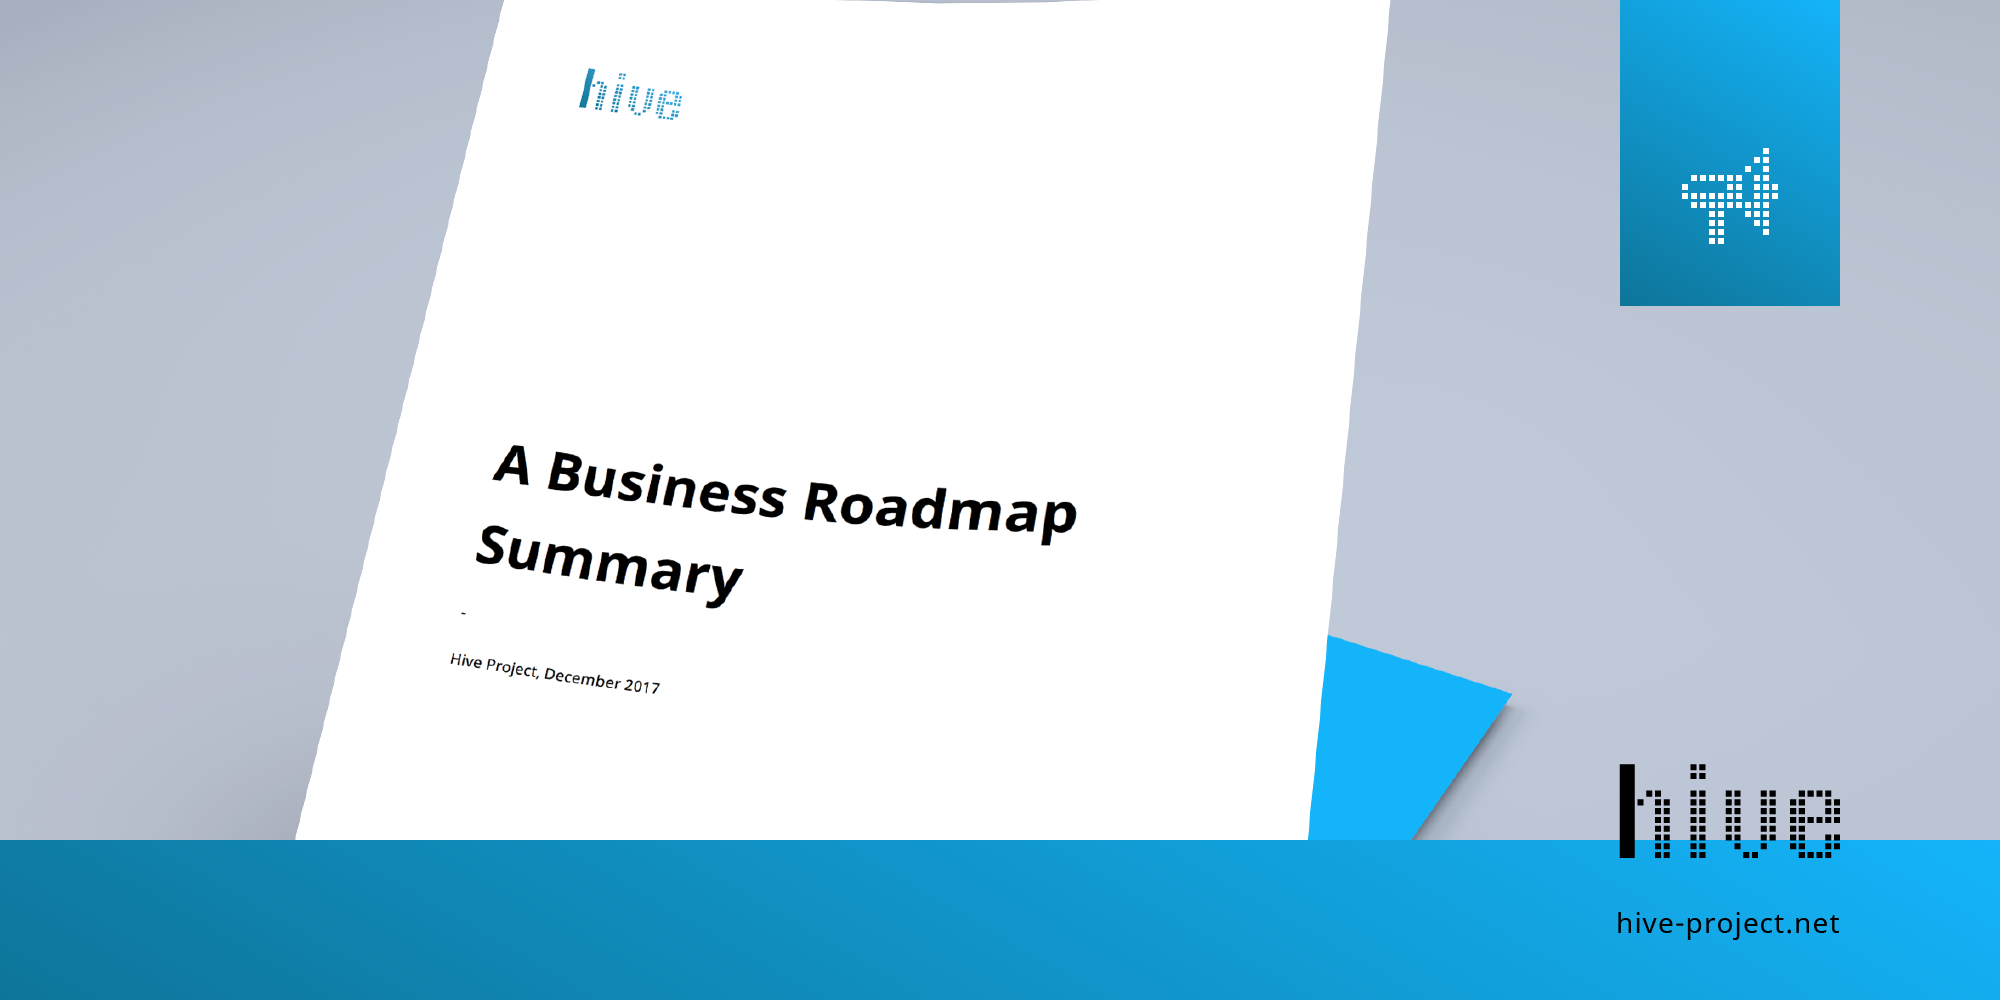 Hvn business roadmap summary a blueprint for our long term success hvn business roadmap summary a blueprint for our long term success malvernweather Gallery